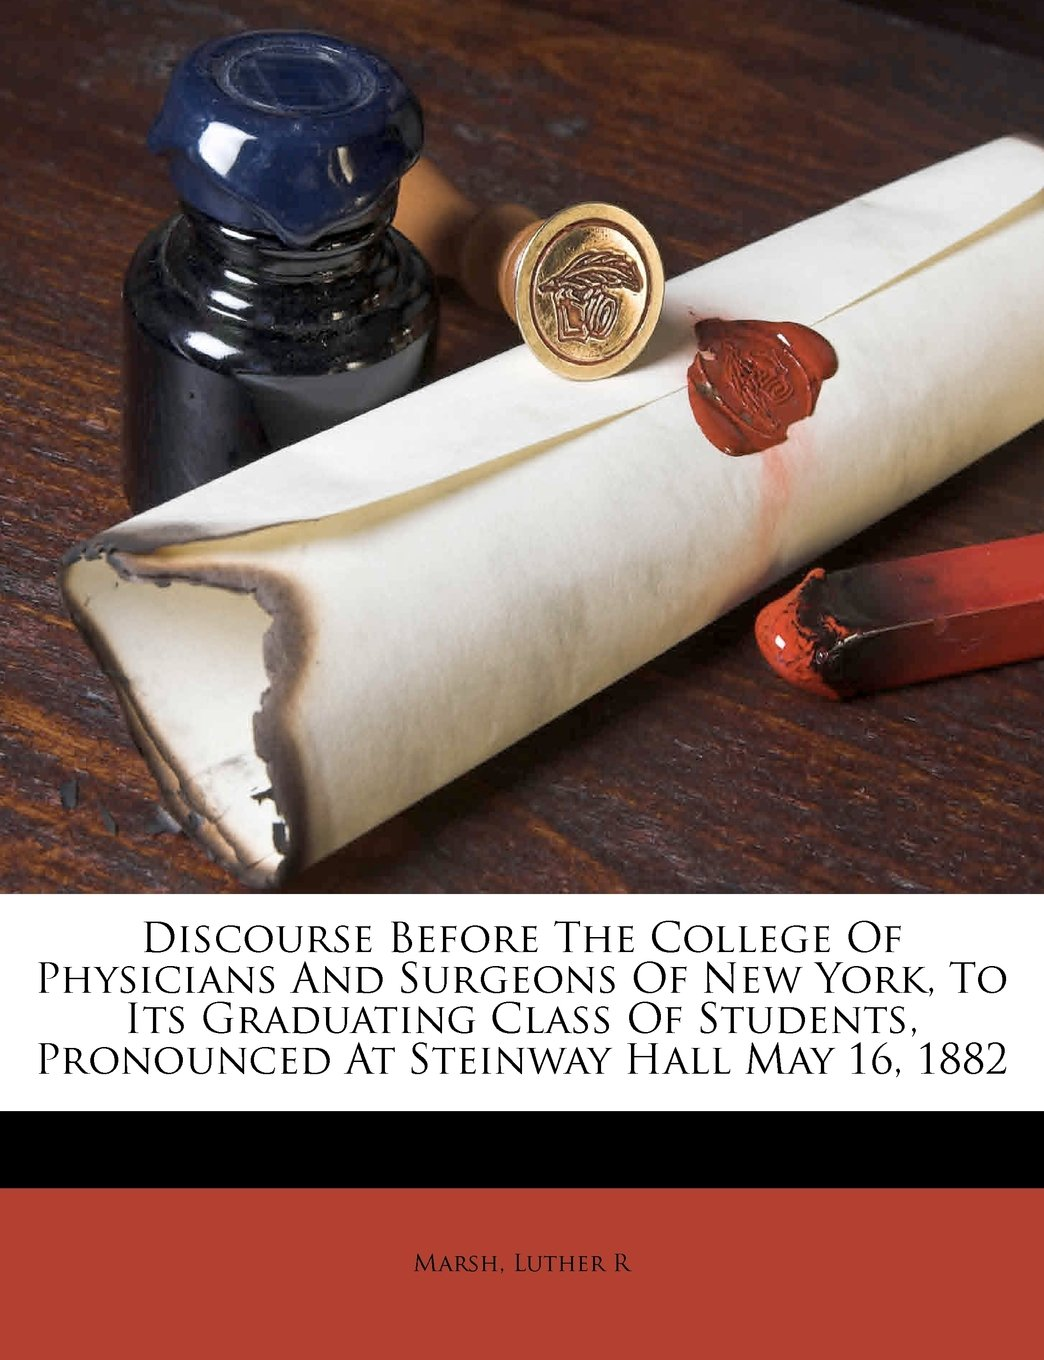 Download Discourse Before The College Of Physicians And Surgeons Of New York, To Its Graduating Class Of Students, Pronounced At Steinway Hall May 16, 1882 ebook